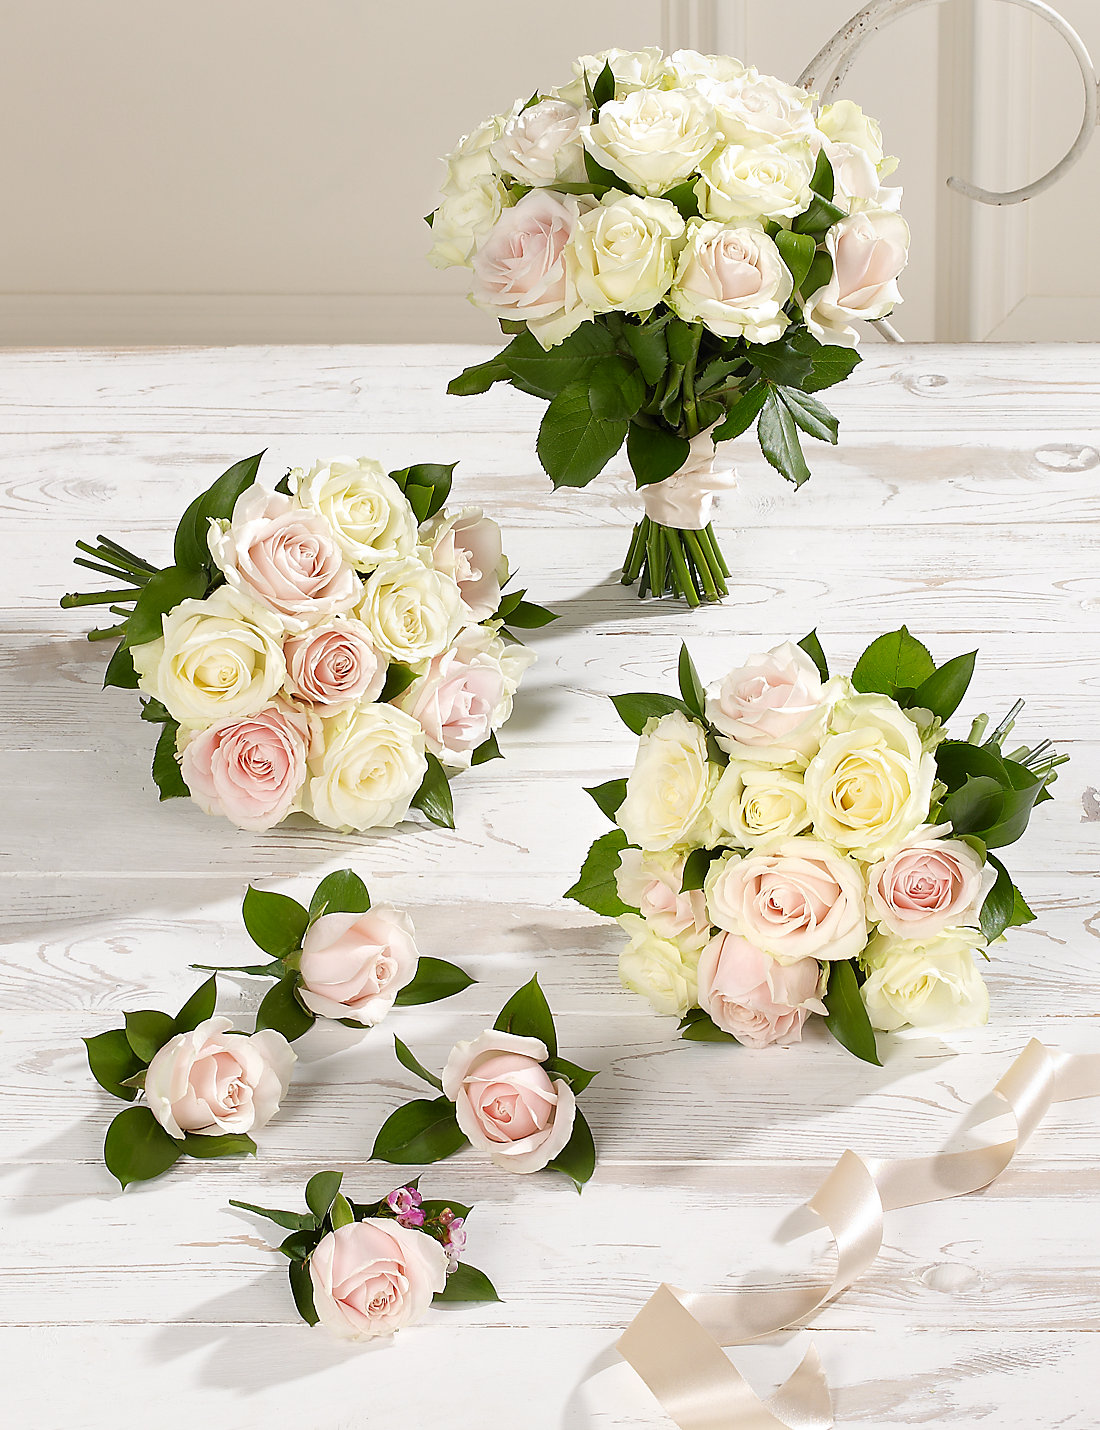 White Pink Luxury Rose Wedding Flowers